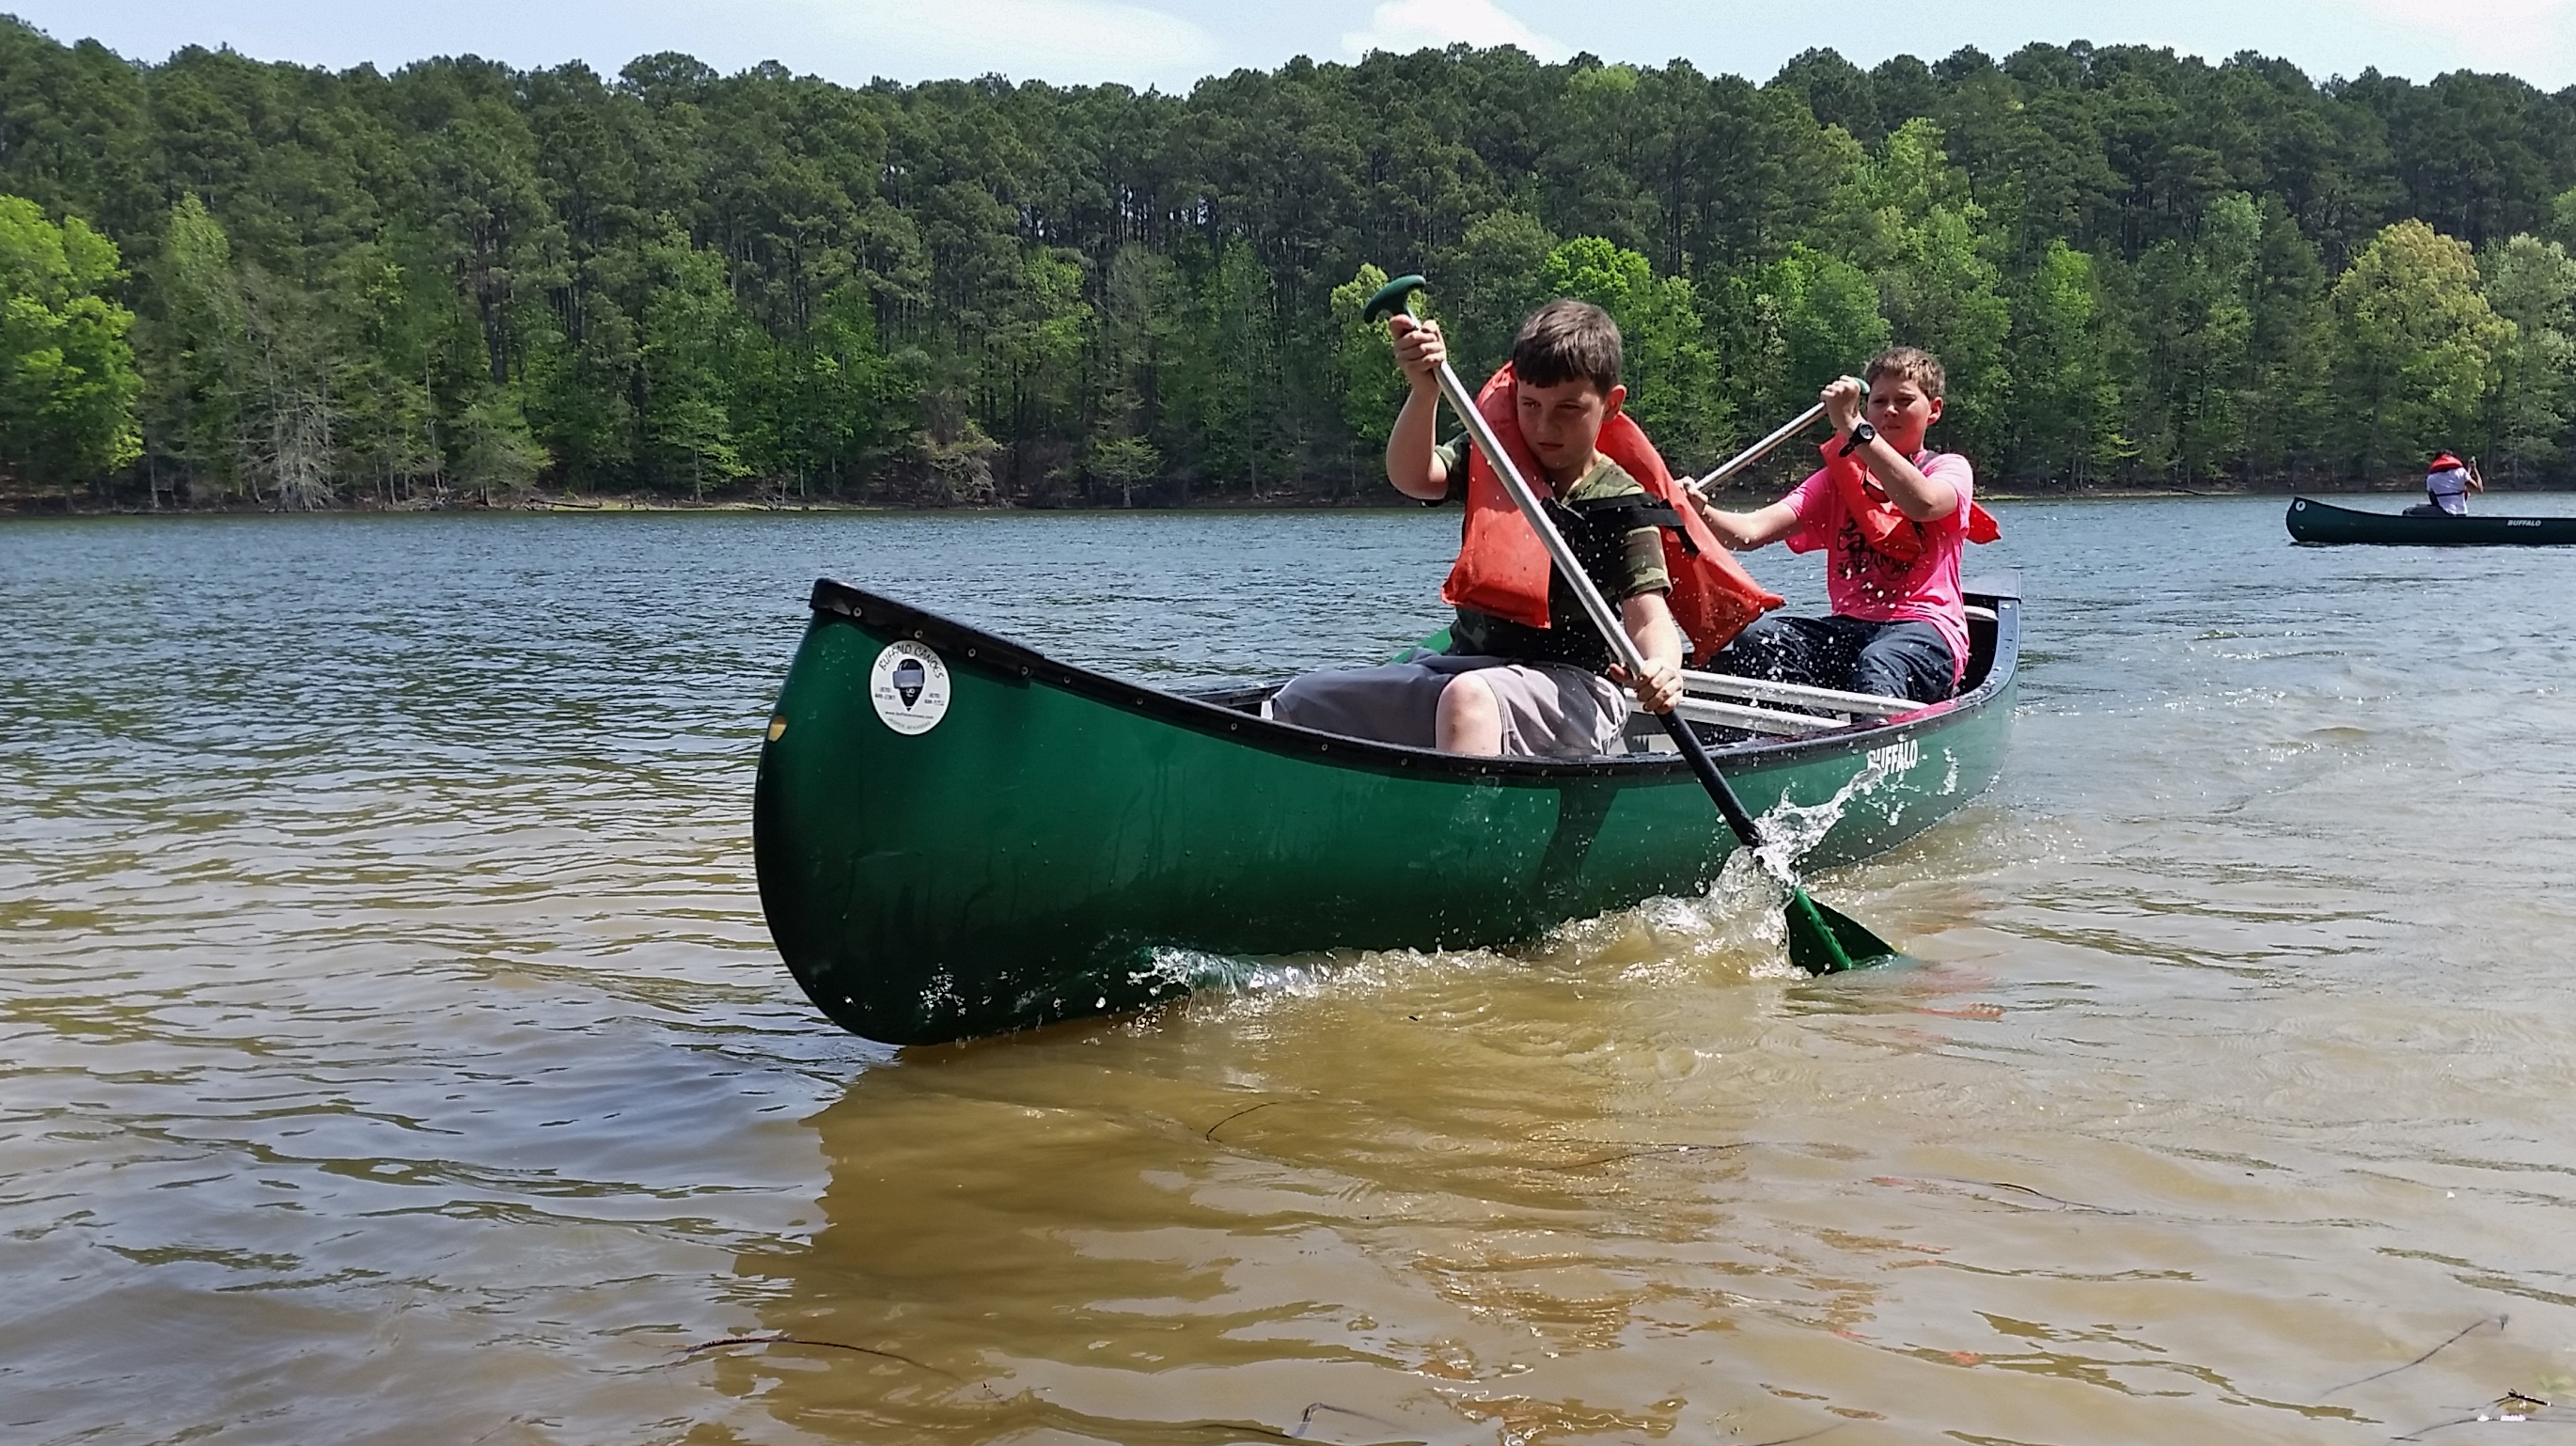 Youth learn outdoor skills at 4-H Survivor Camp